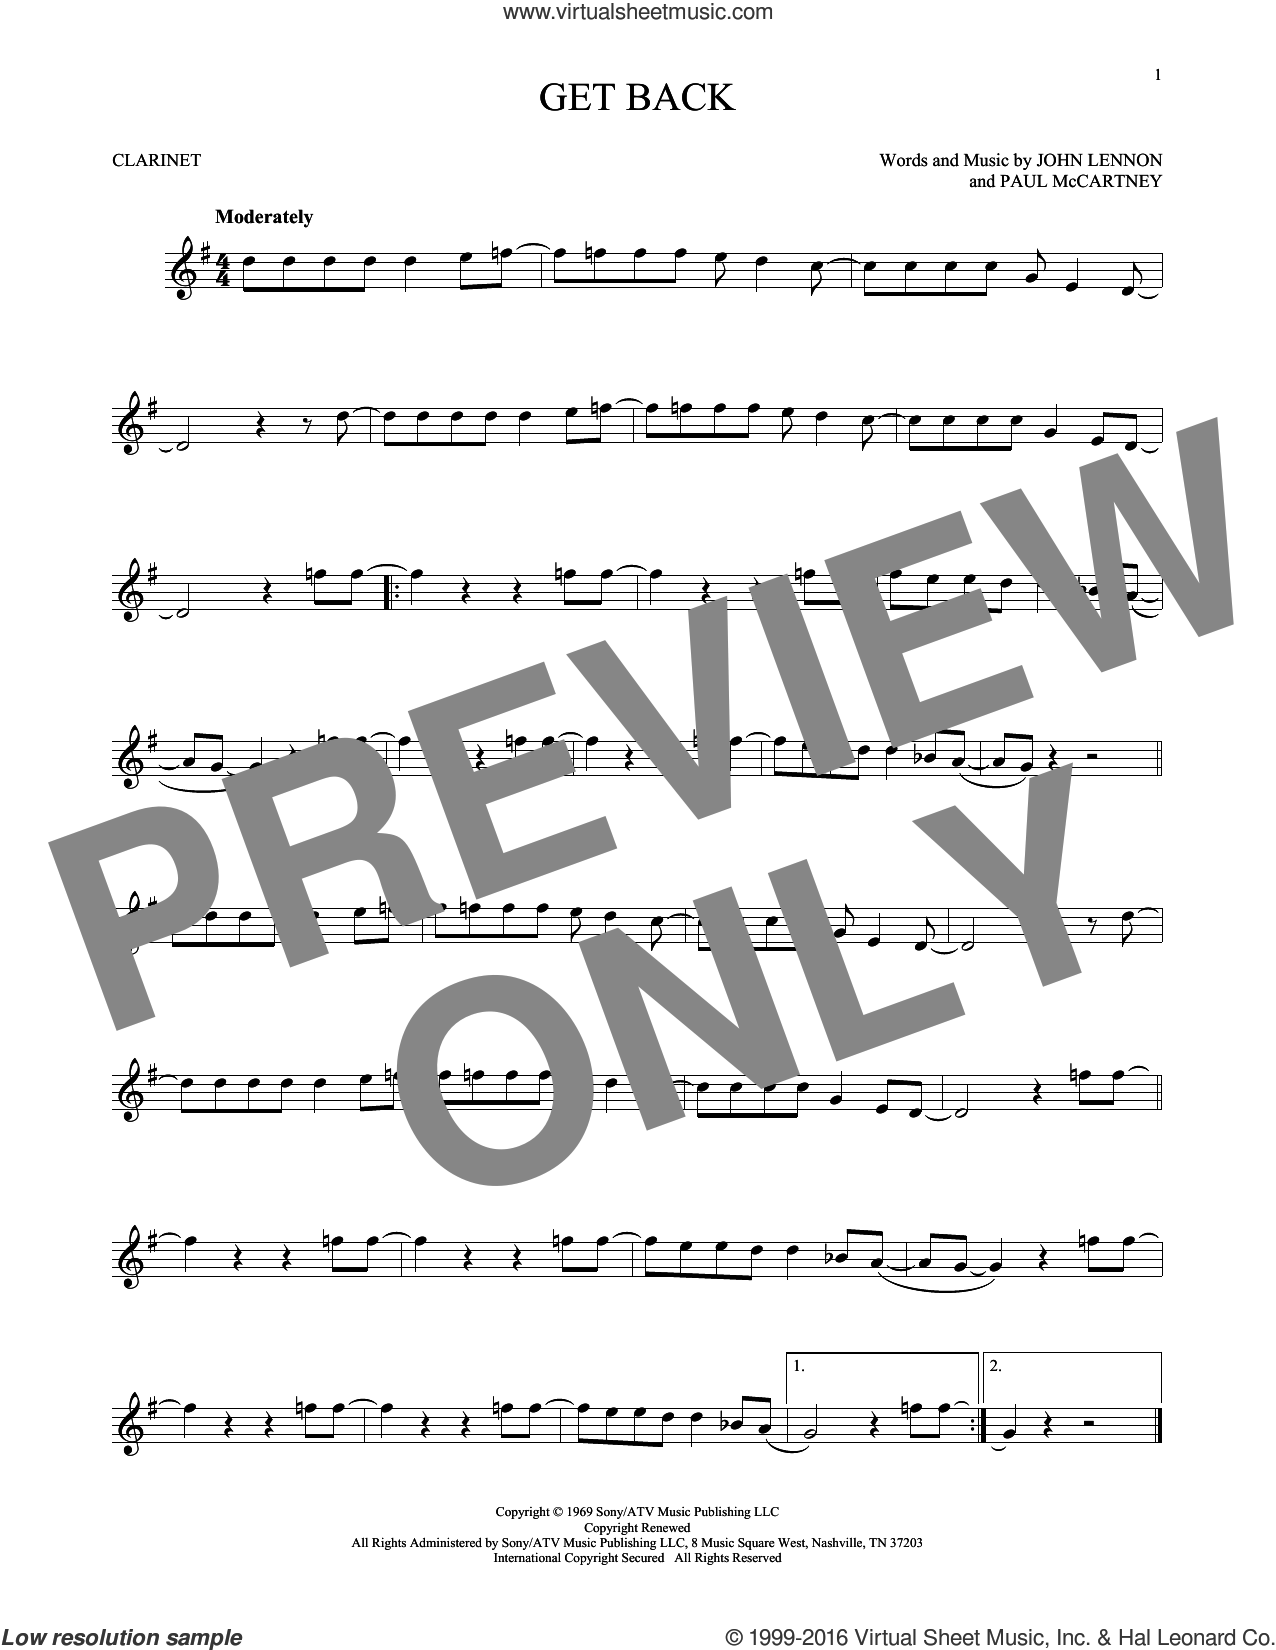 Get Back sheet music for clarinet solo by The Beatles, John Lennon and Paul McCartney, intermediate skill level